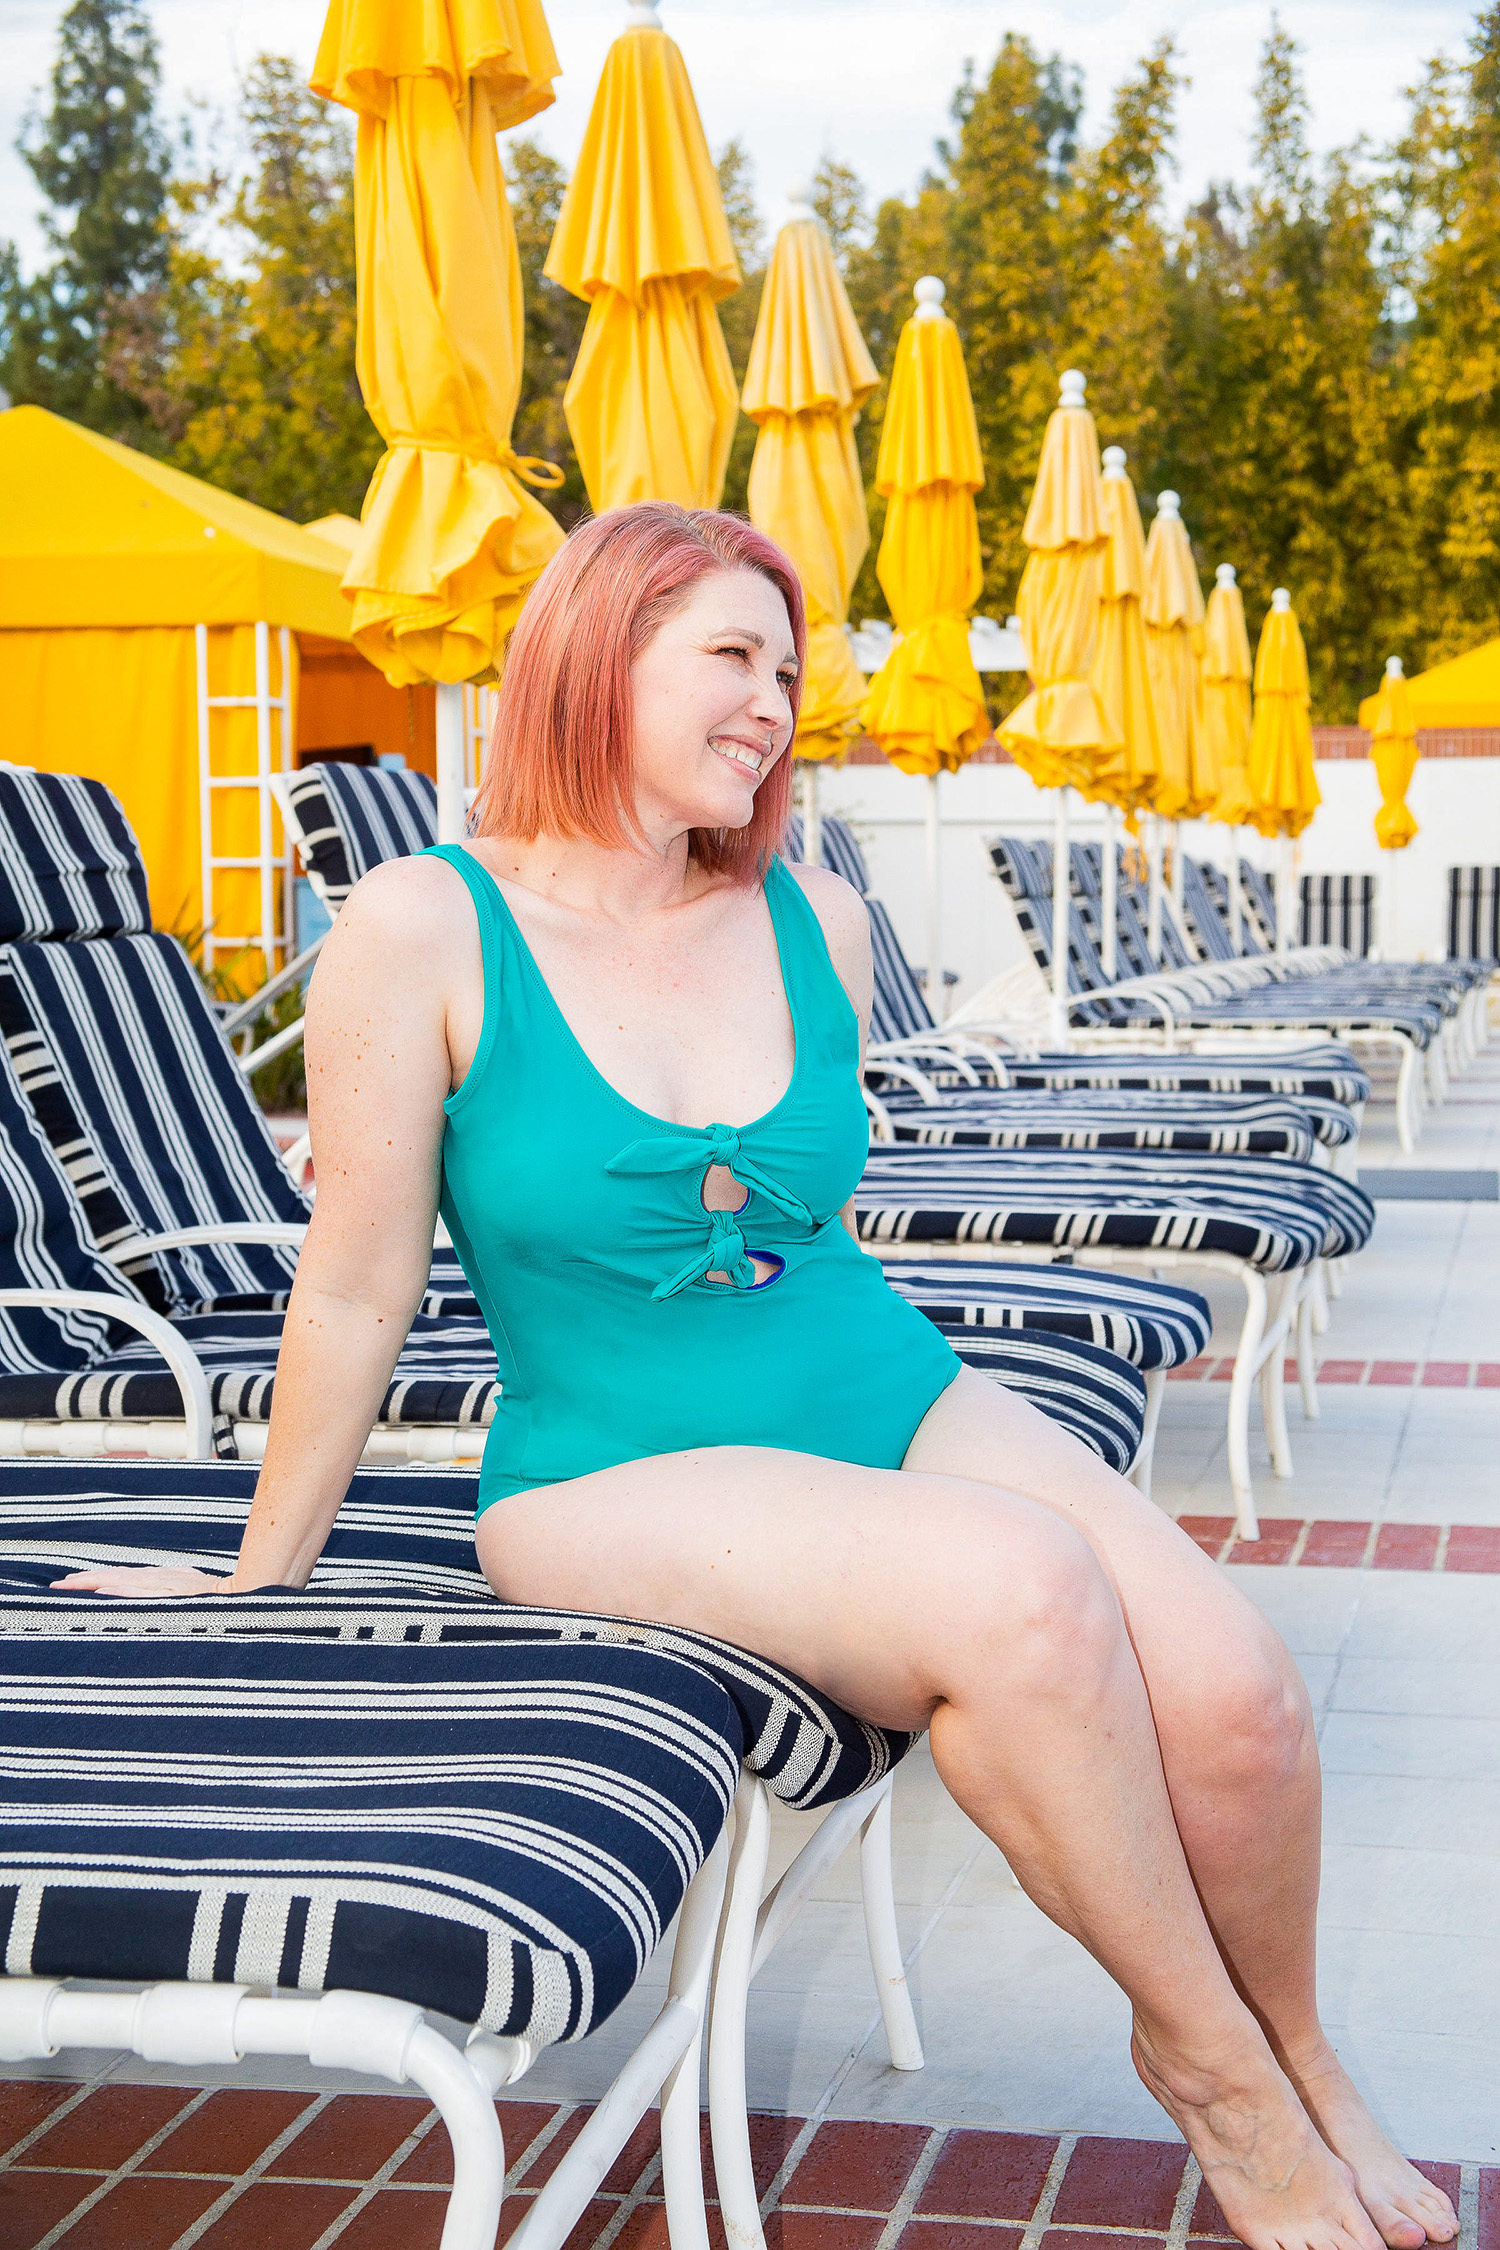 On the hunt for great one piece bathing suits? This is one of my favorite Old Navy Bathing Suits, it's super flattering and the perfect mom bathing suit!